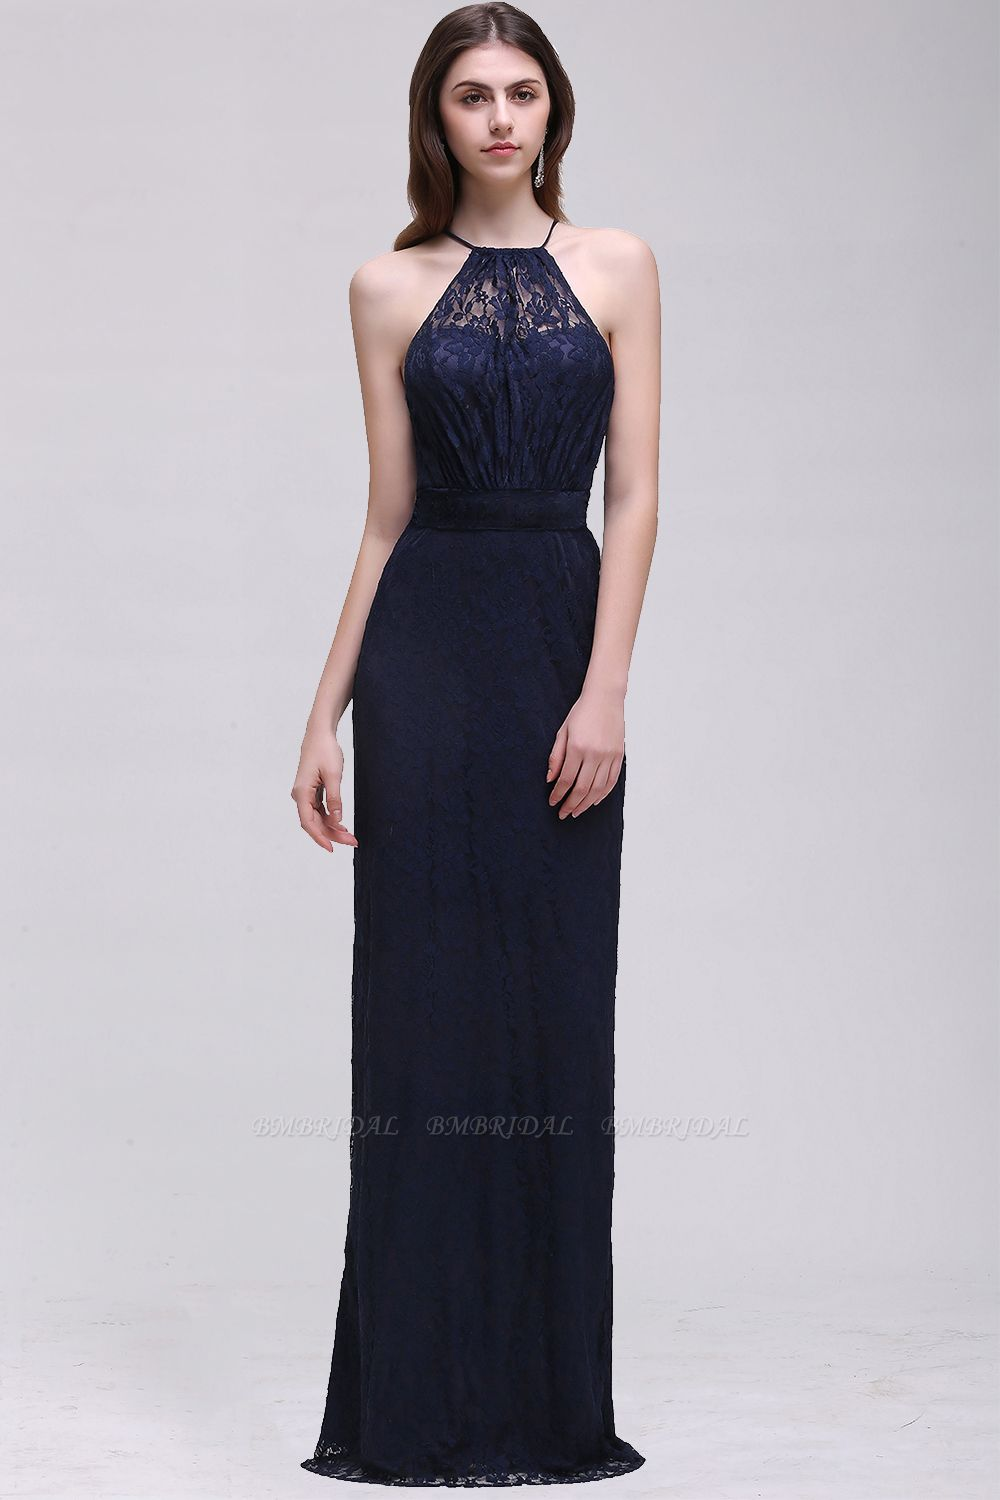 Vintage Halter Sleeveless Lace Navy Bridesmaid Dresses Affordable